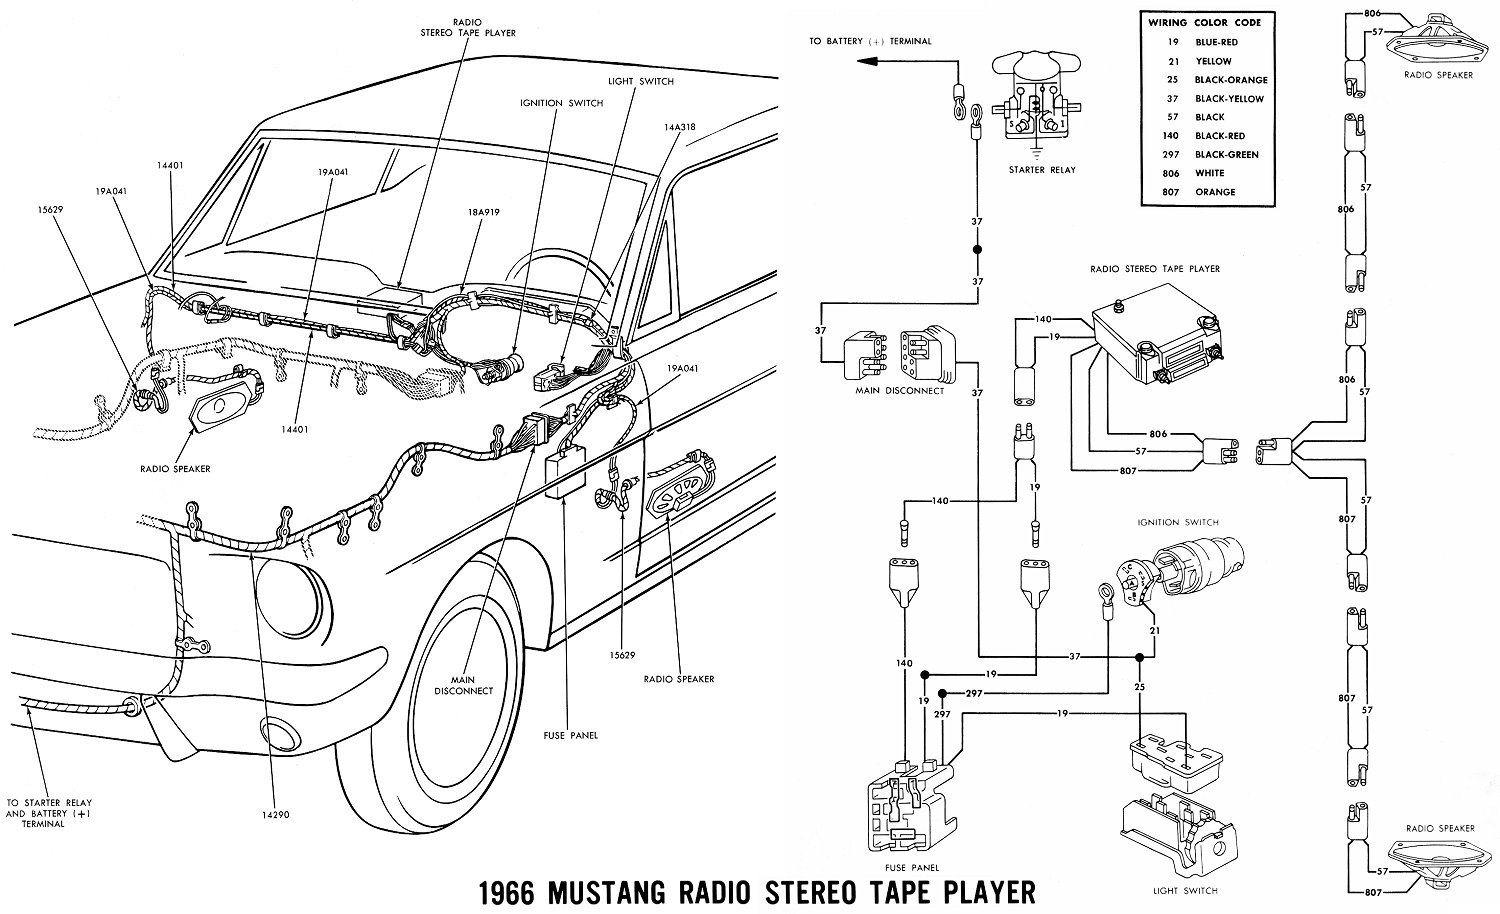 66stereo 1966 mustang wiring diagrams average joe restoration 1966 mustang wiring diagrams at creativeand.co